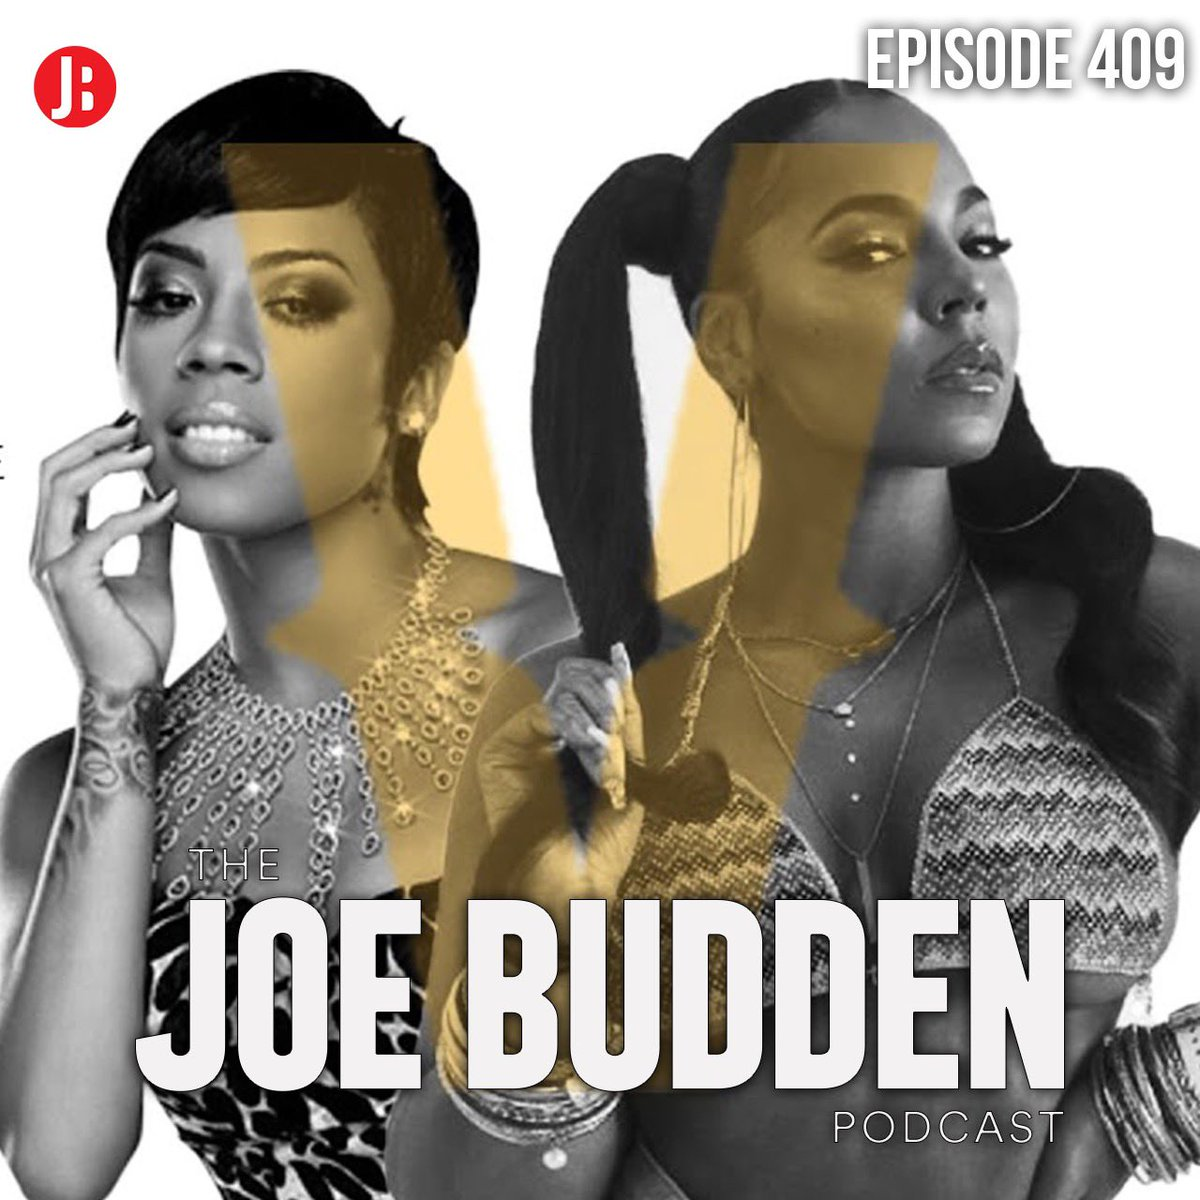 """The @JoeBudden Podcast Episode 409 """"Chin Check"""" is now available!   #JoeBuddenNetwork @JBuddenNetwork   Listen here 🎧 Apple:  SoundCloud:"""